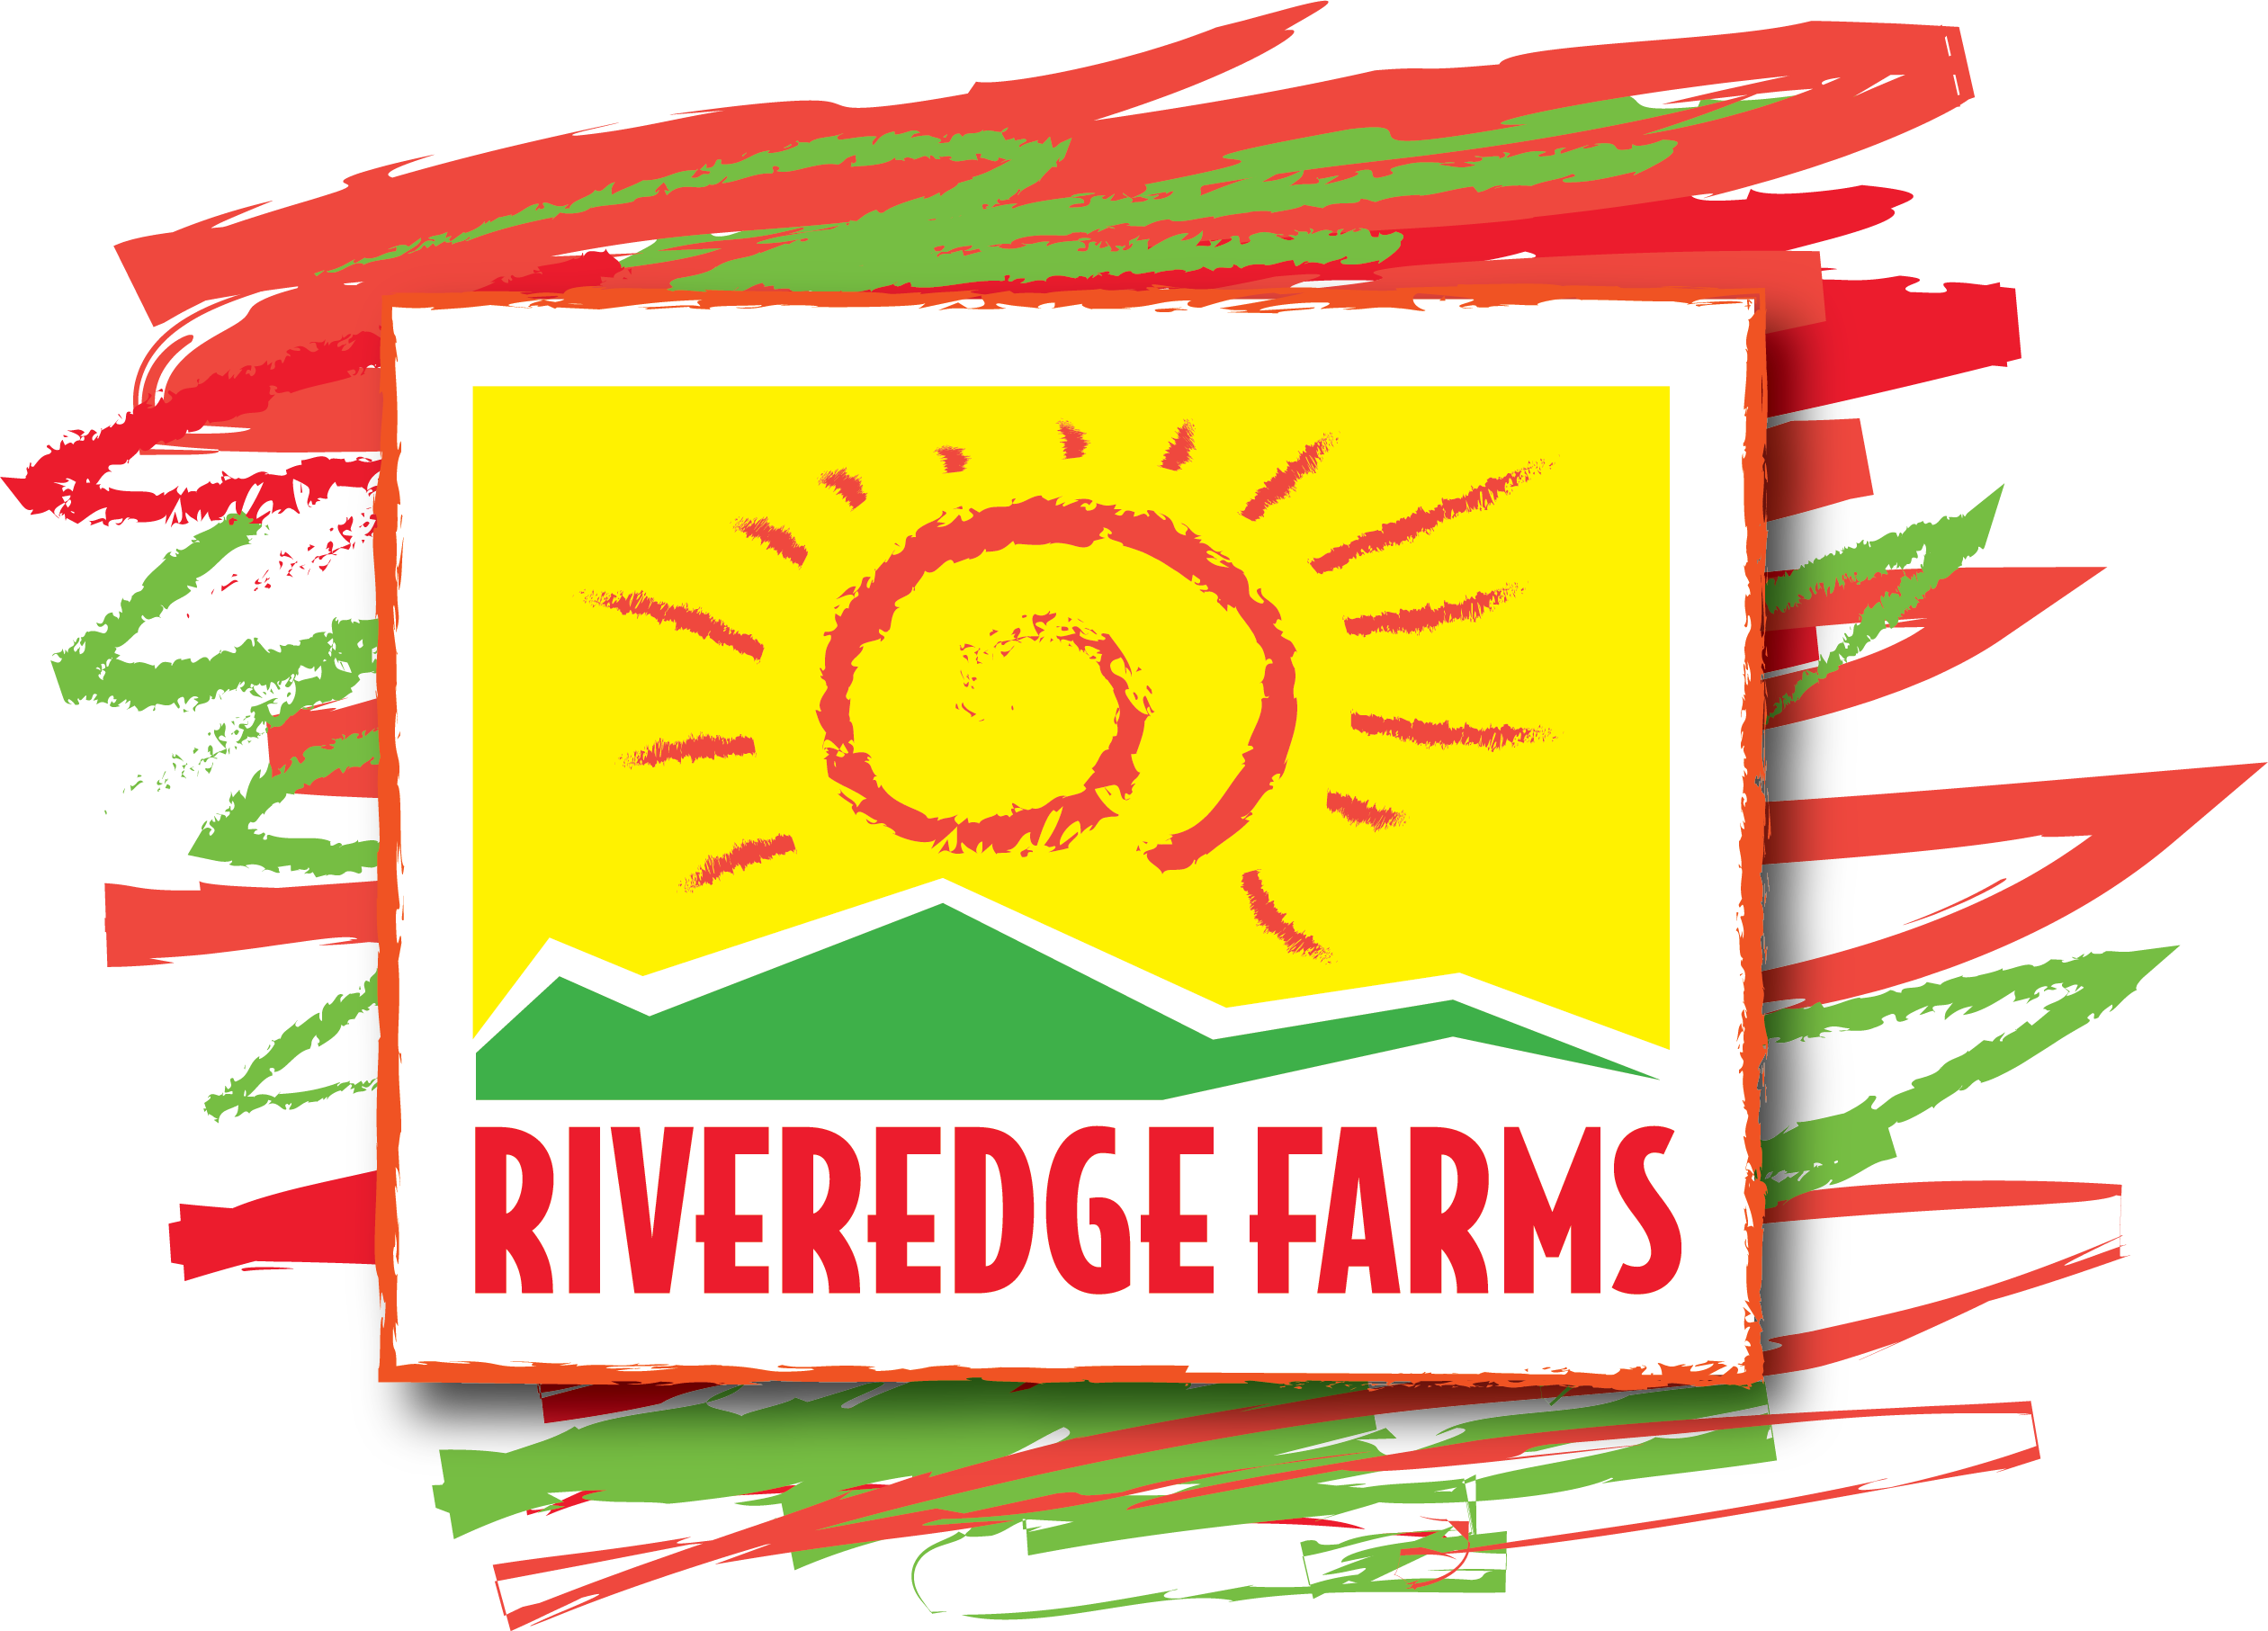 RiverEdge Farms Logo